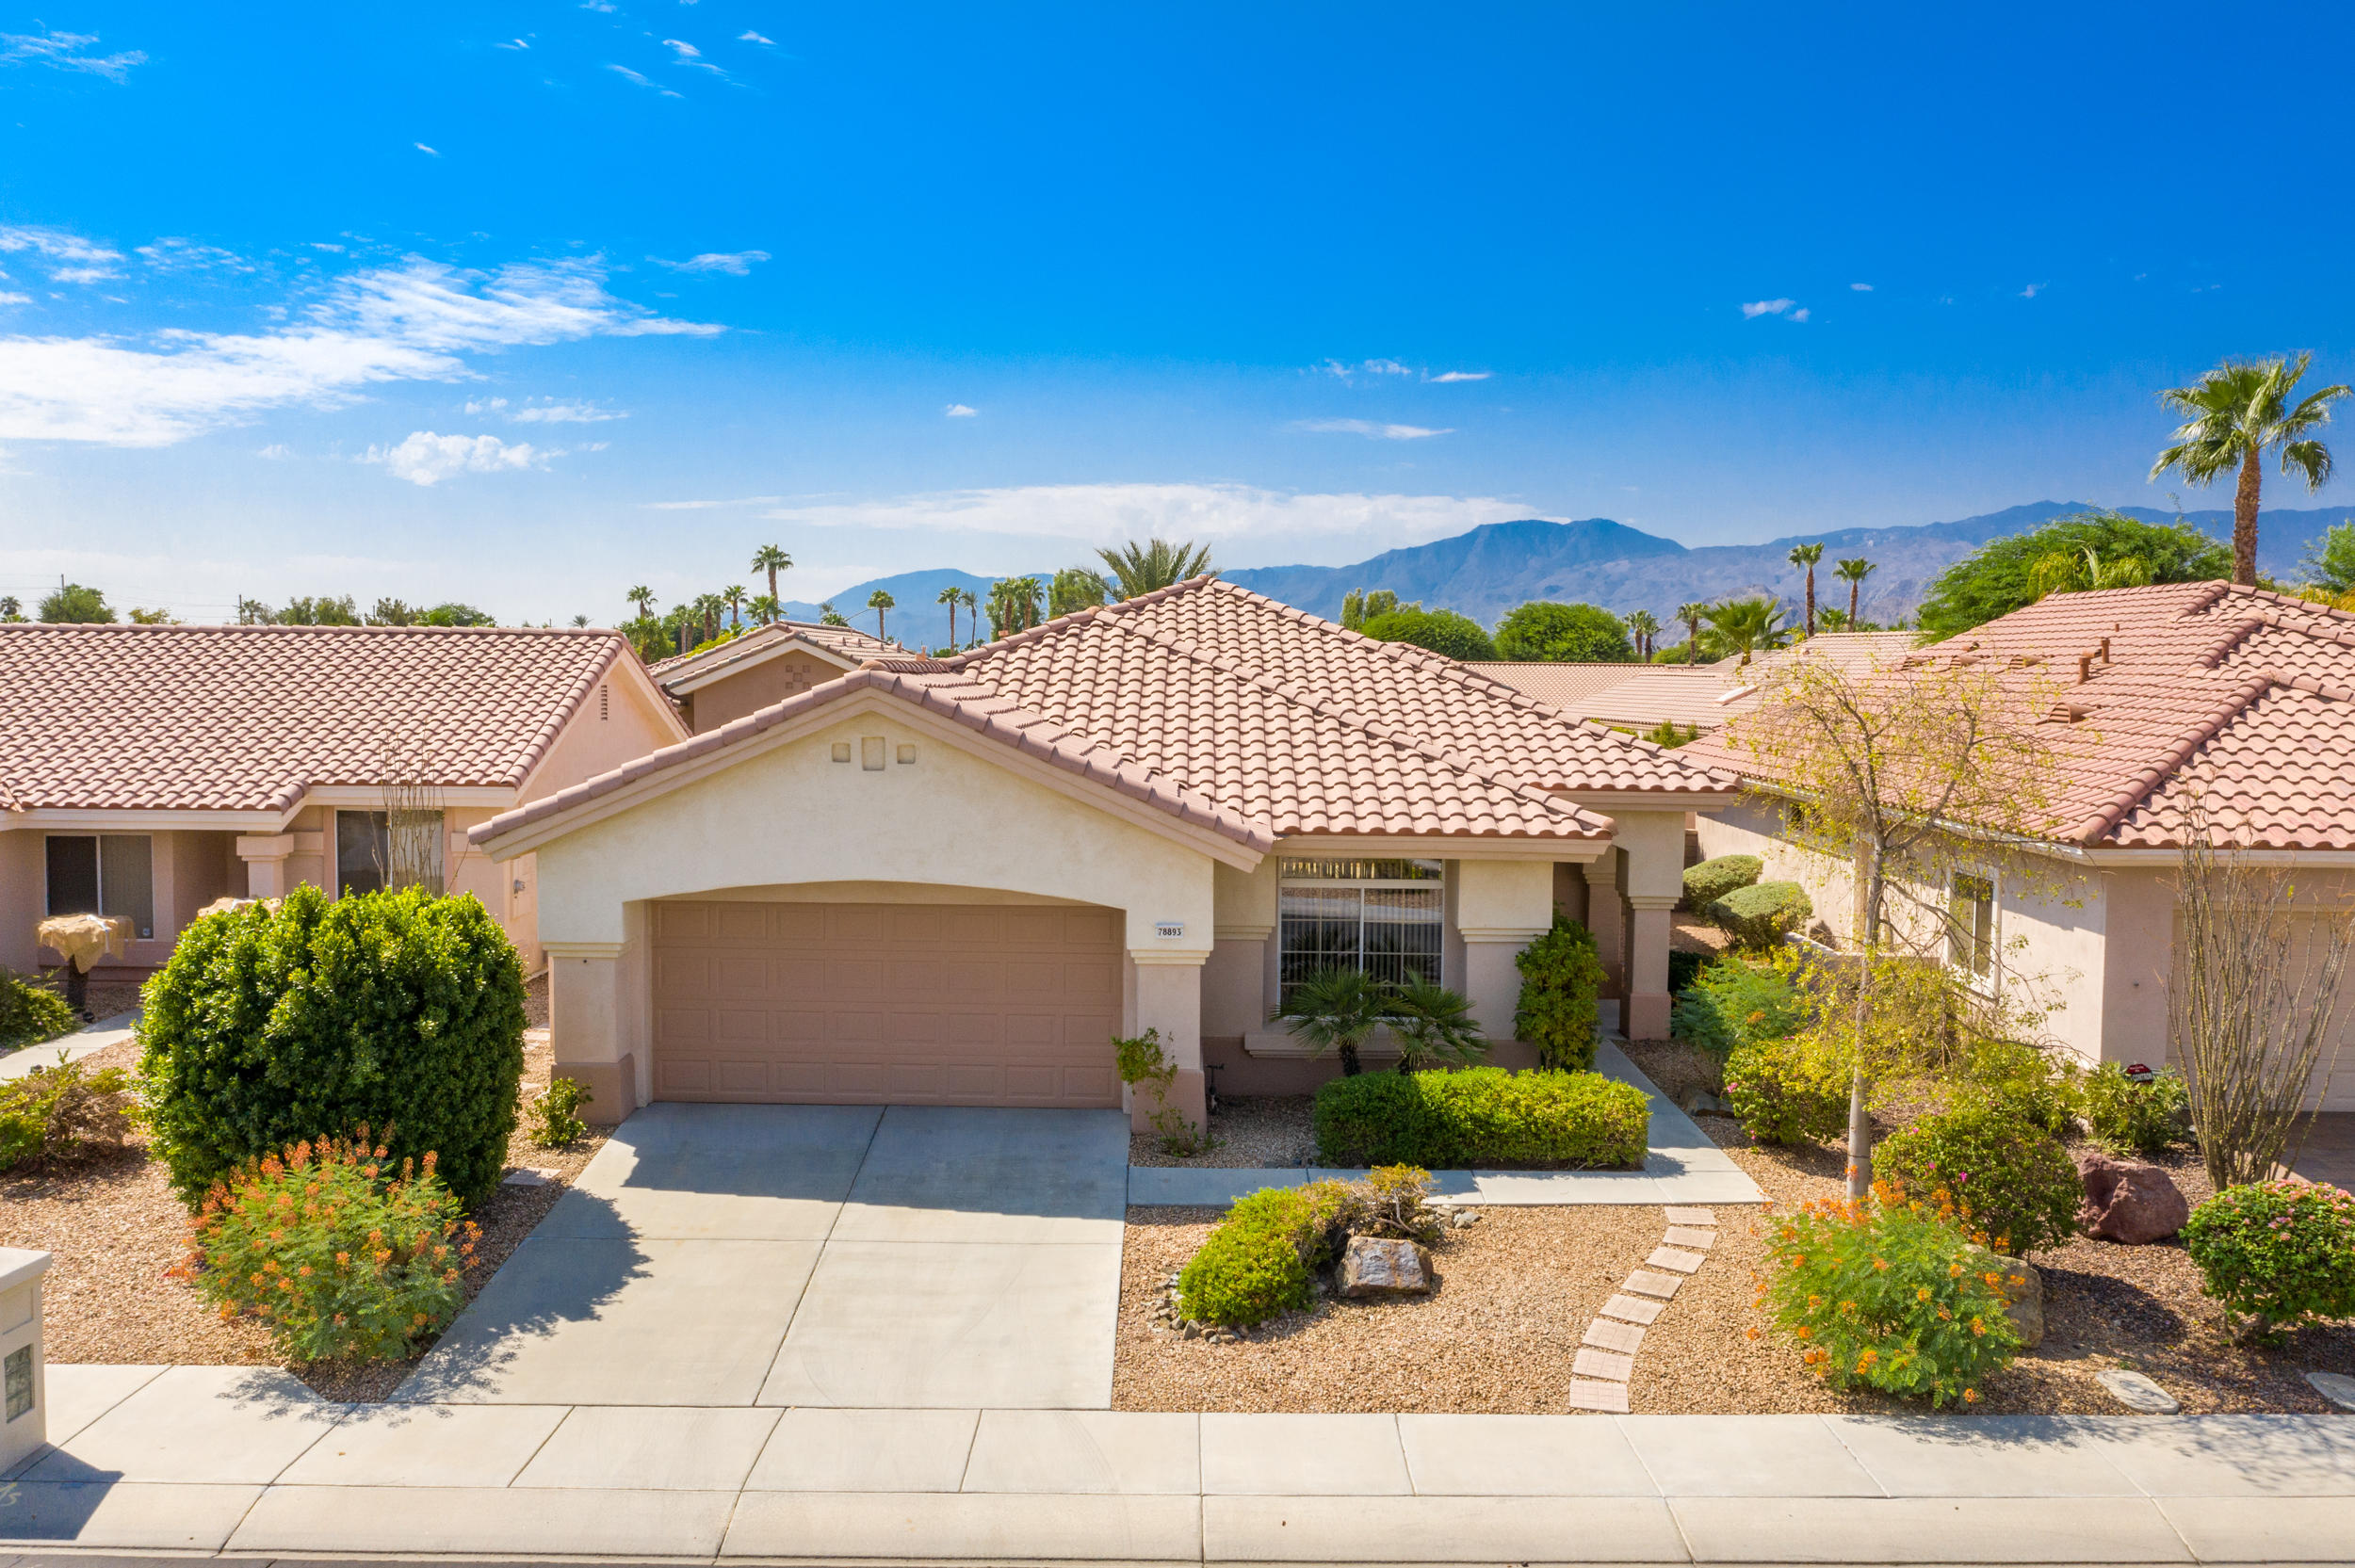 Photo of 78893 Waterford Lane, Palm Desert, CA 92211